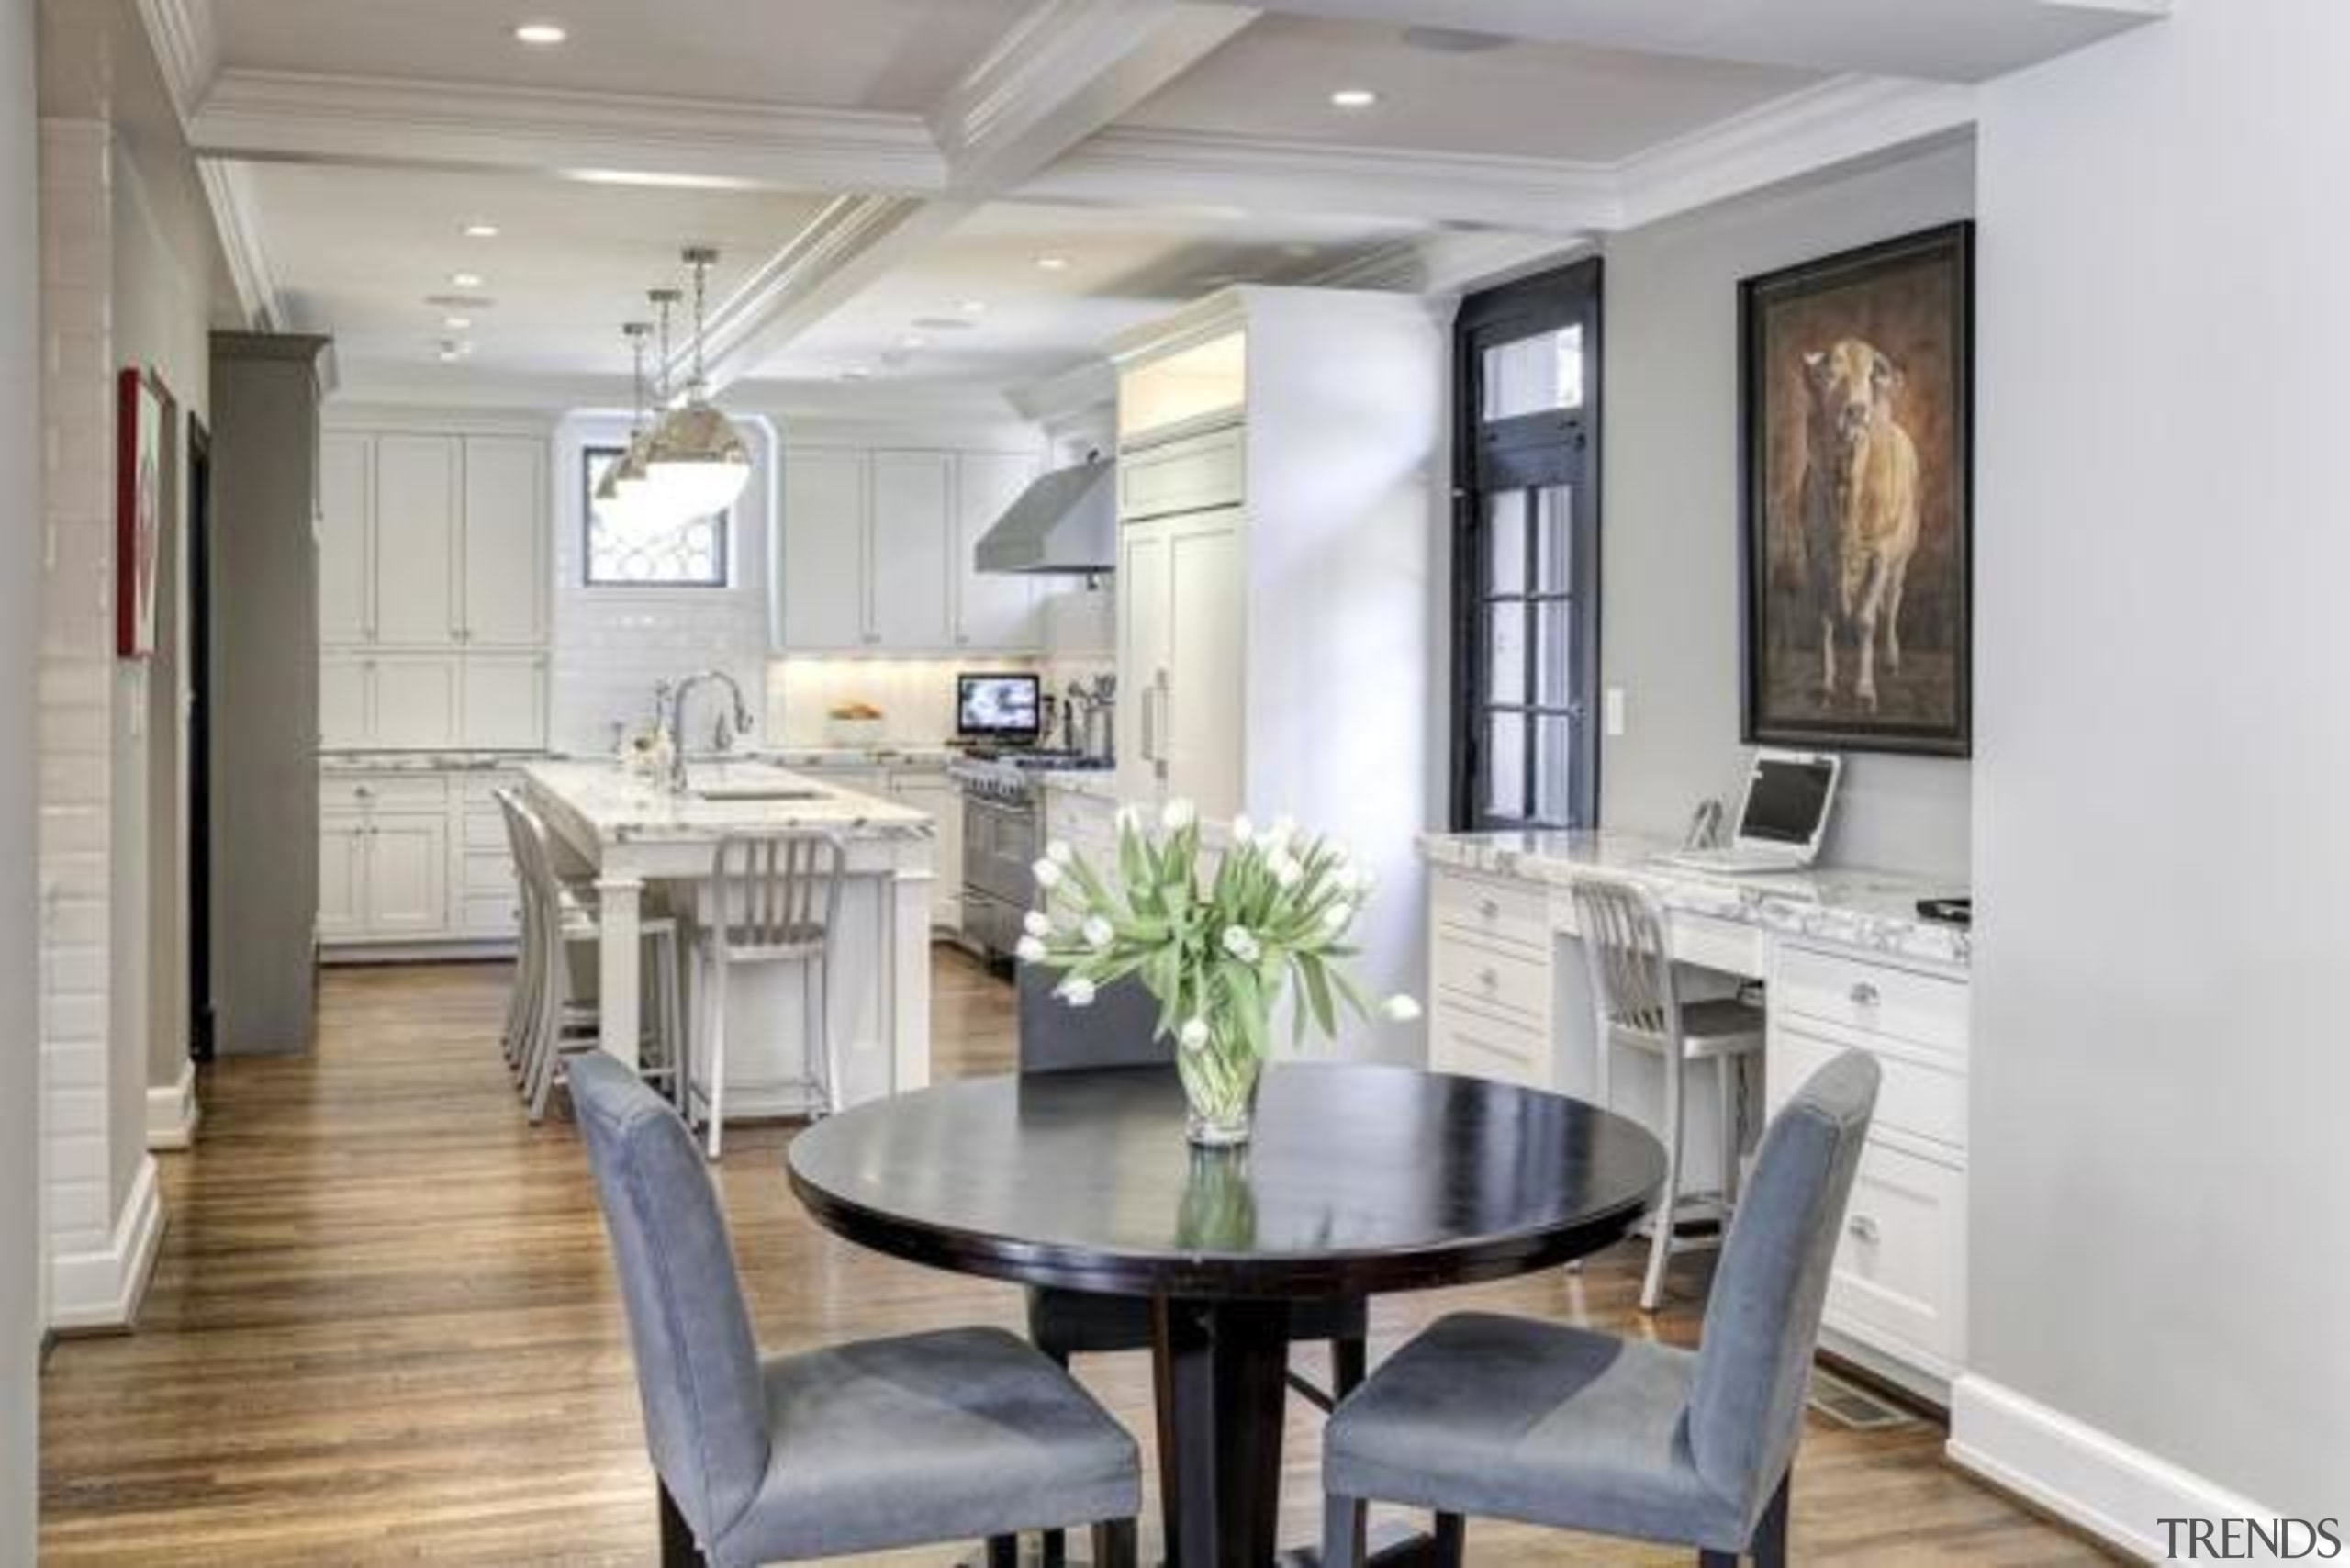 Original story from Trulia ceiling, countertop, cuisine classique, dining room, floor, home, interior design, kitchen, property, real estate, room, table, gray